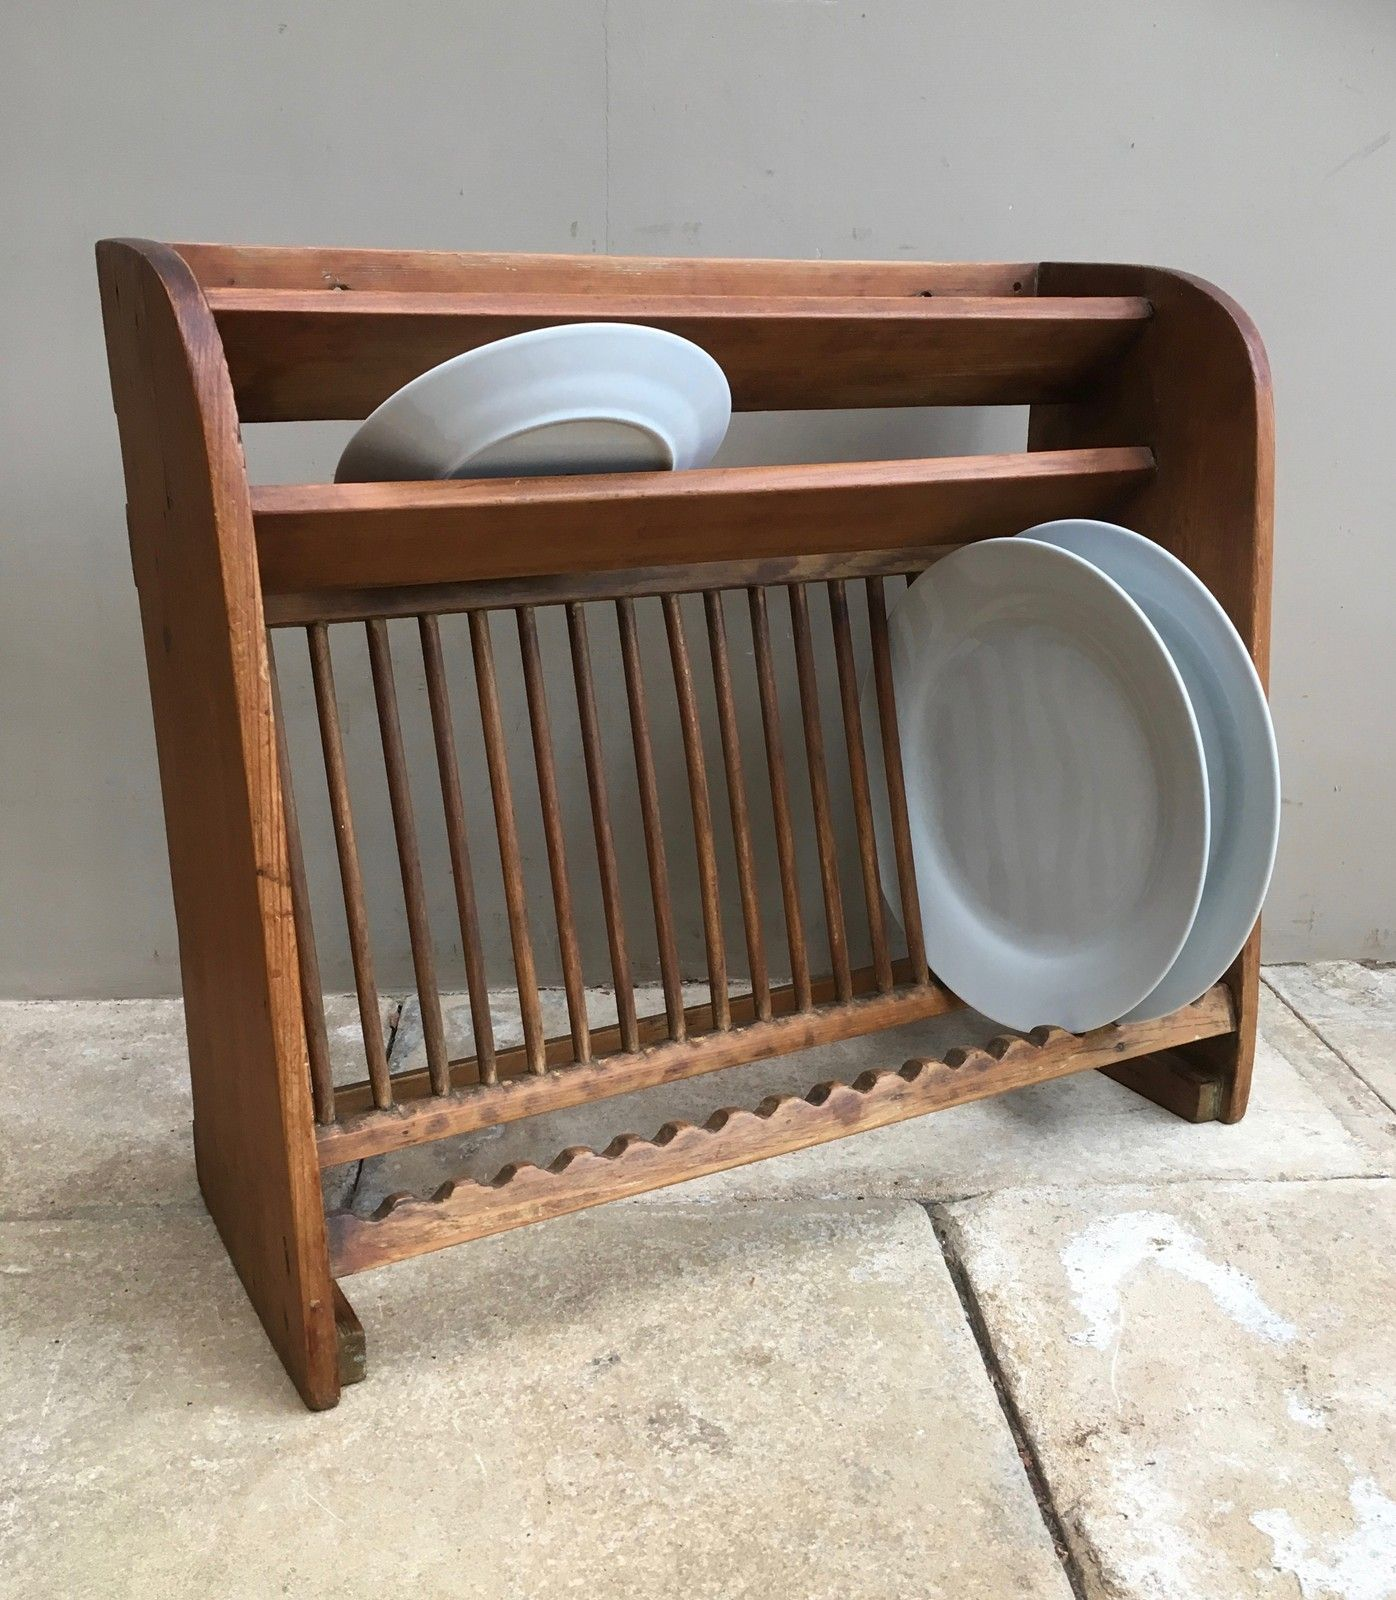 Late Victorian Stripped Pine Plate Rack-the-antique -kitchen-IMG_4480_main_636241621700542421.jpg & Late Victorian Stripped Pine Plate Rack-the-antique-kitchen ...